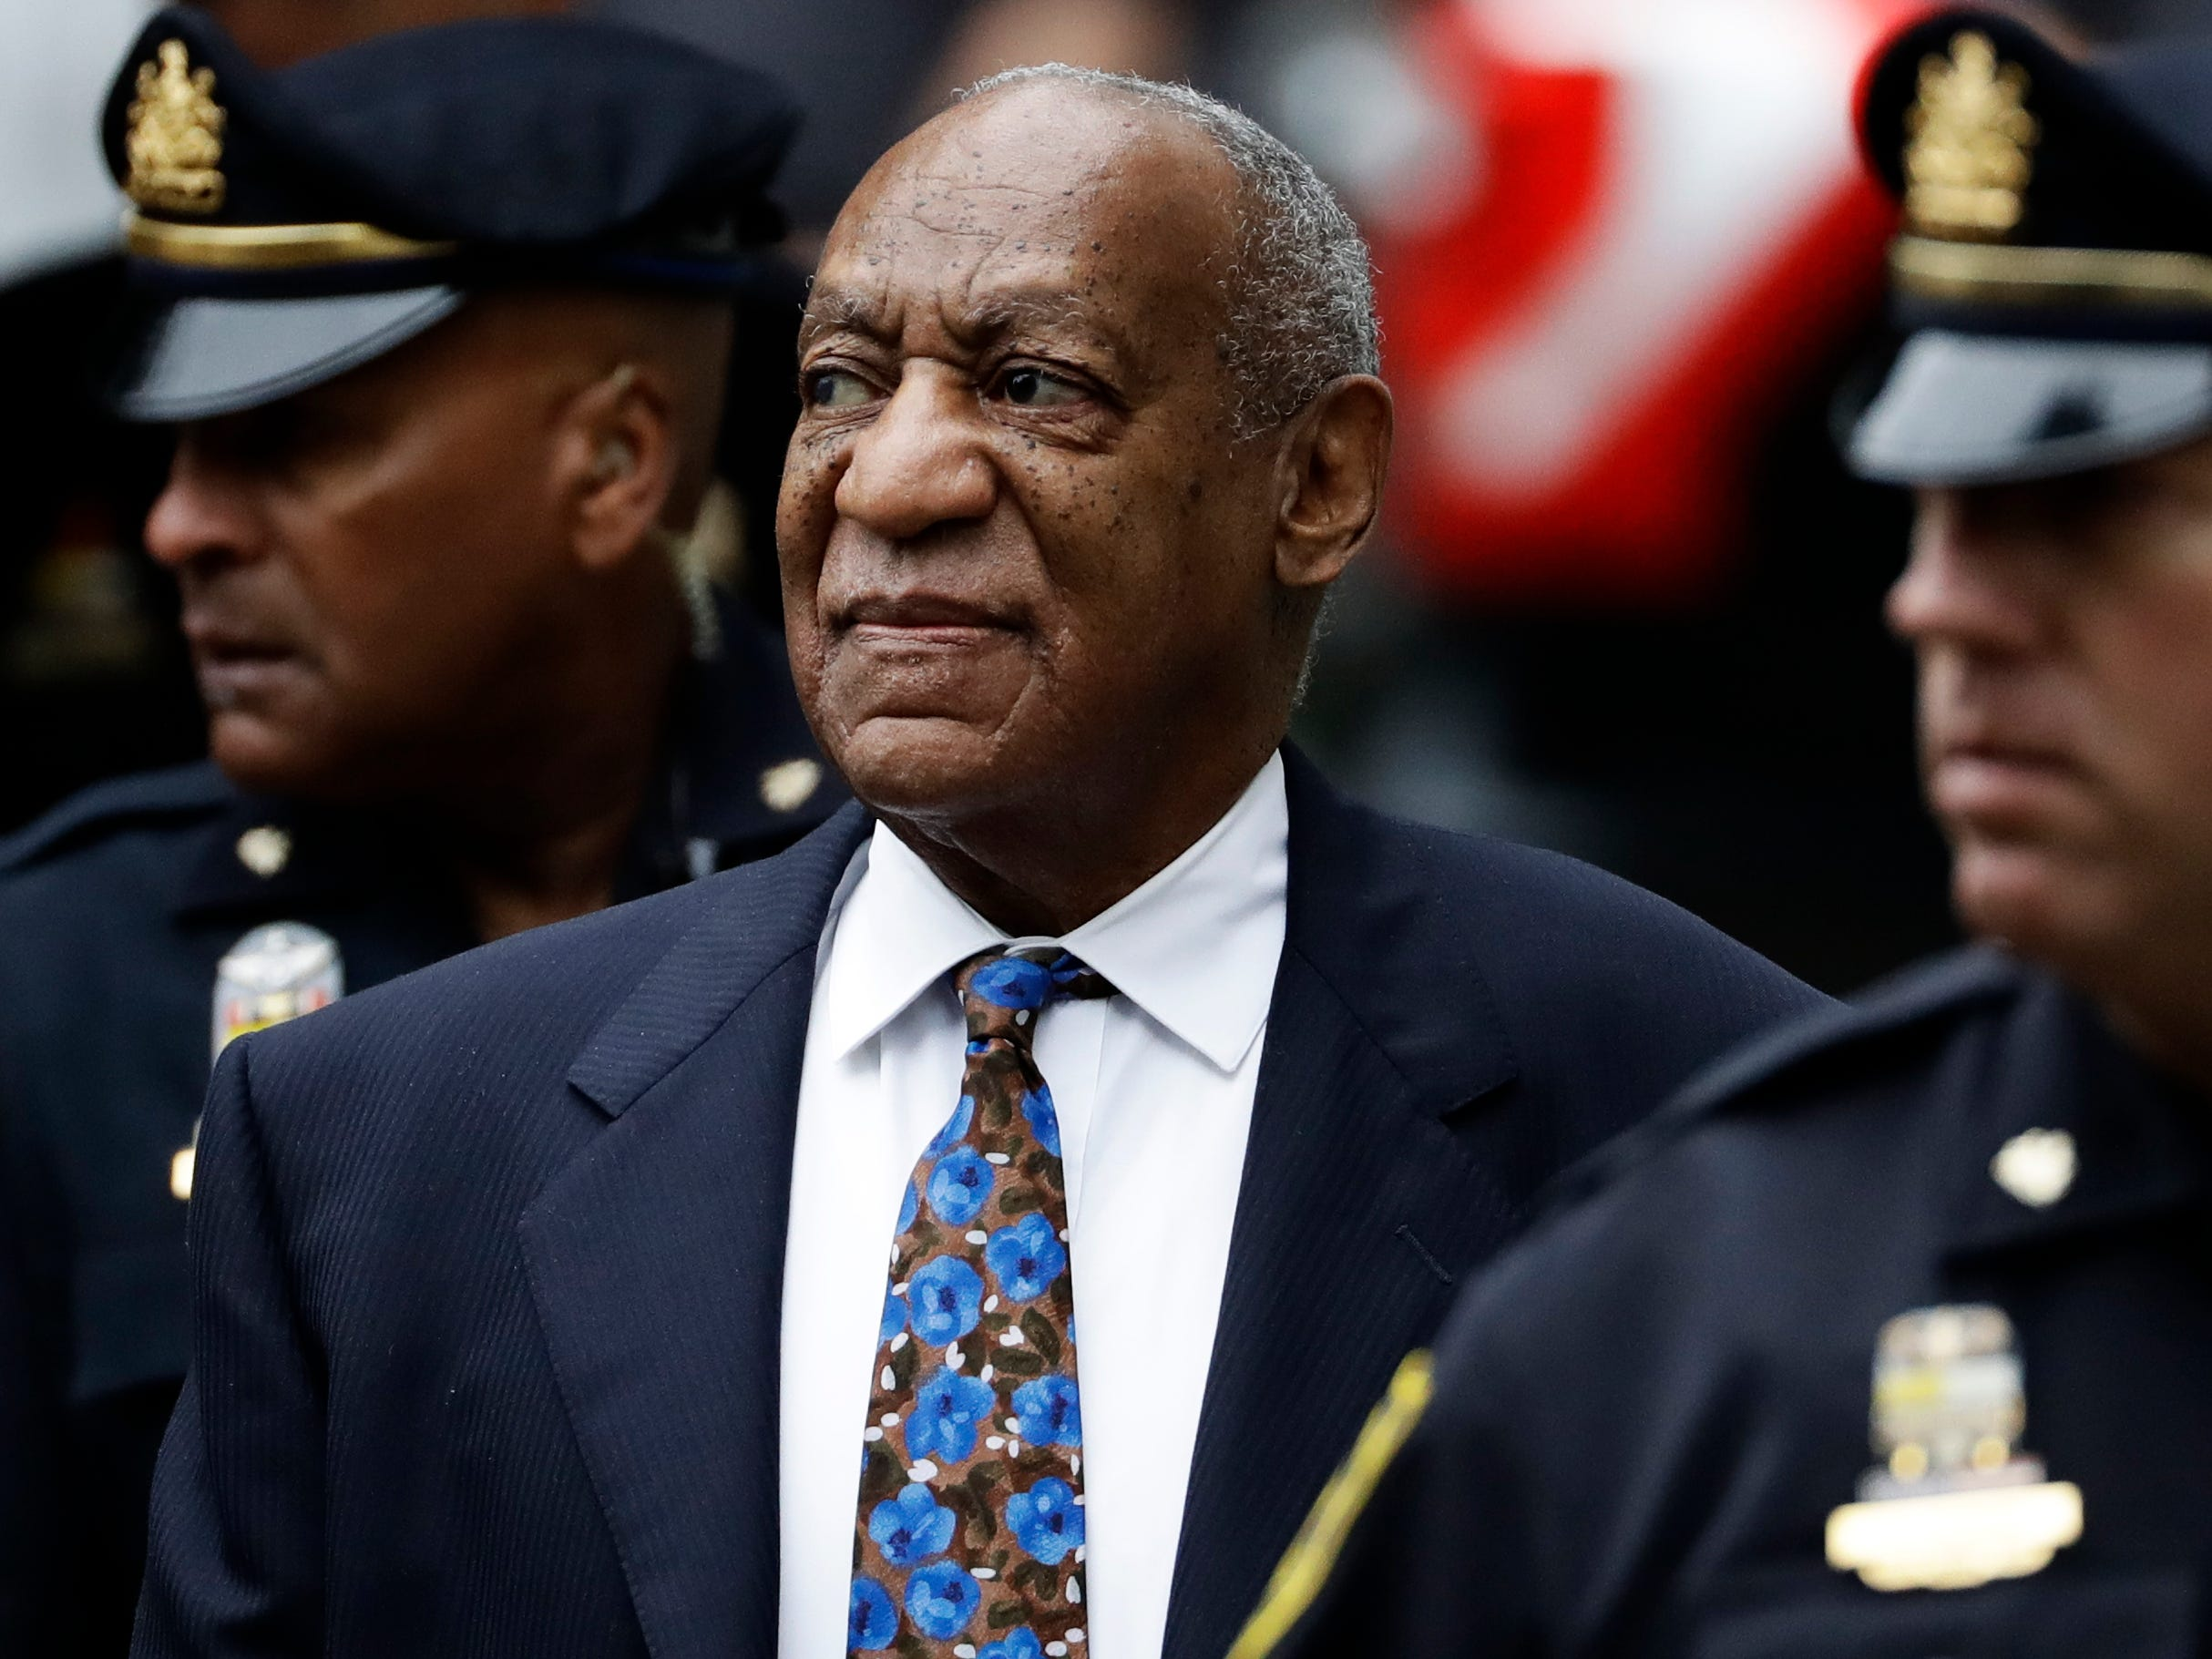 Bill Cosby sentencing: Lawyers give closing arguments; hearing to resume Tuesday